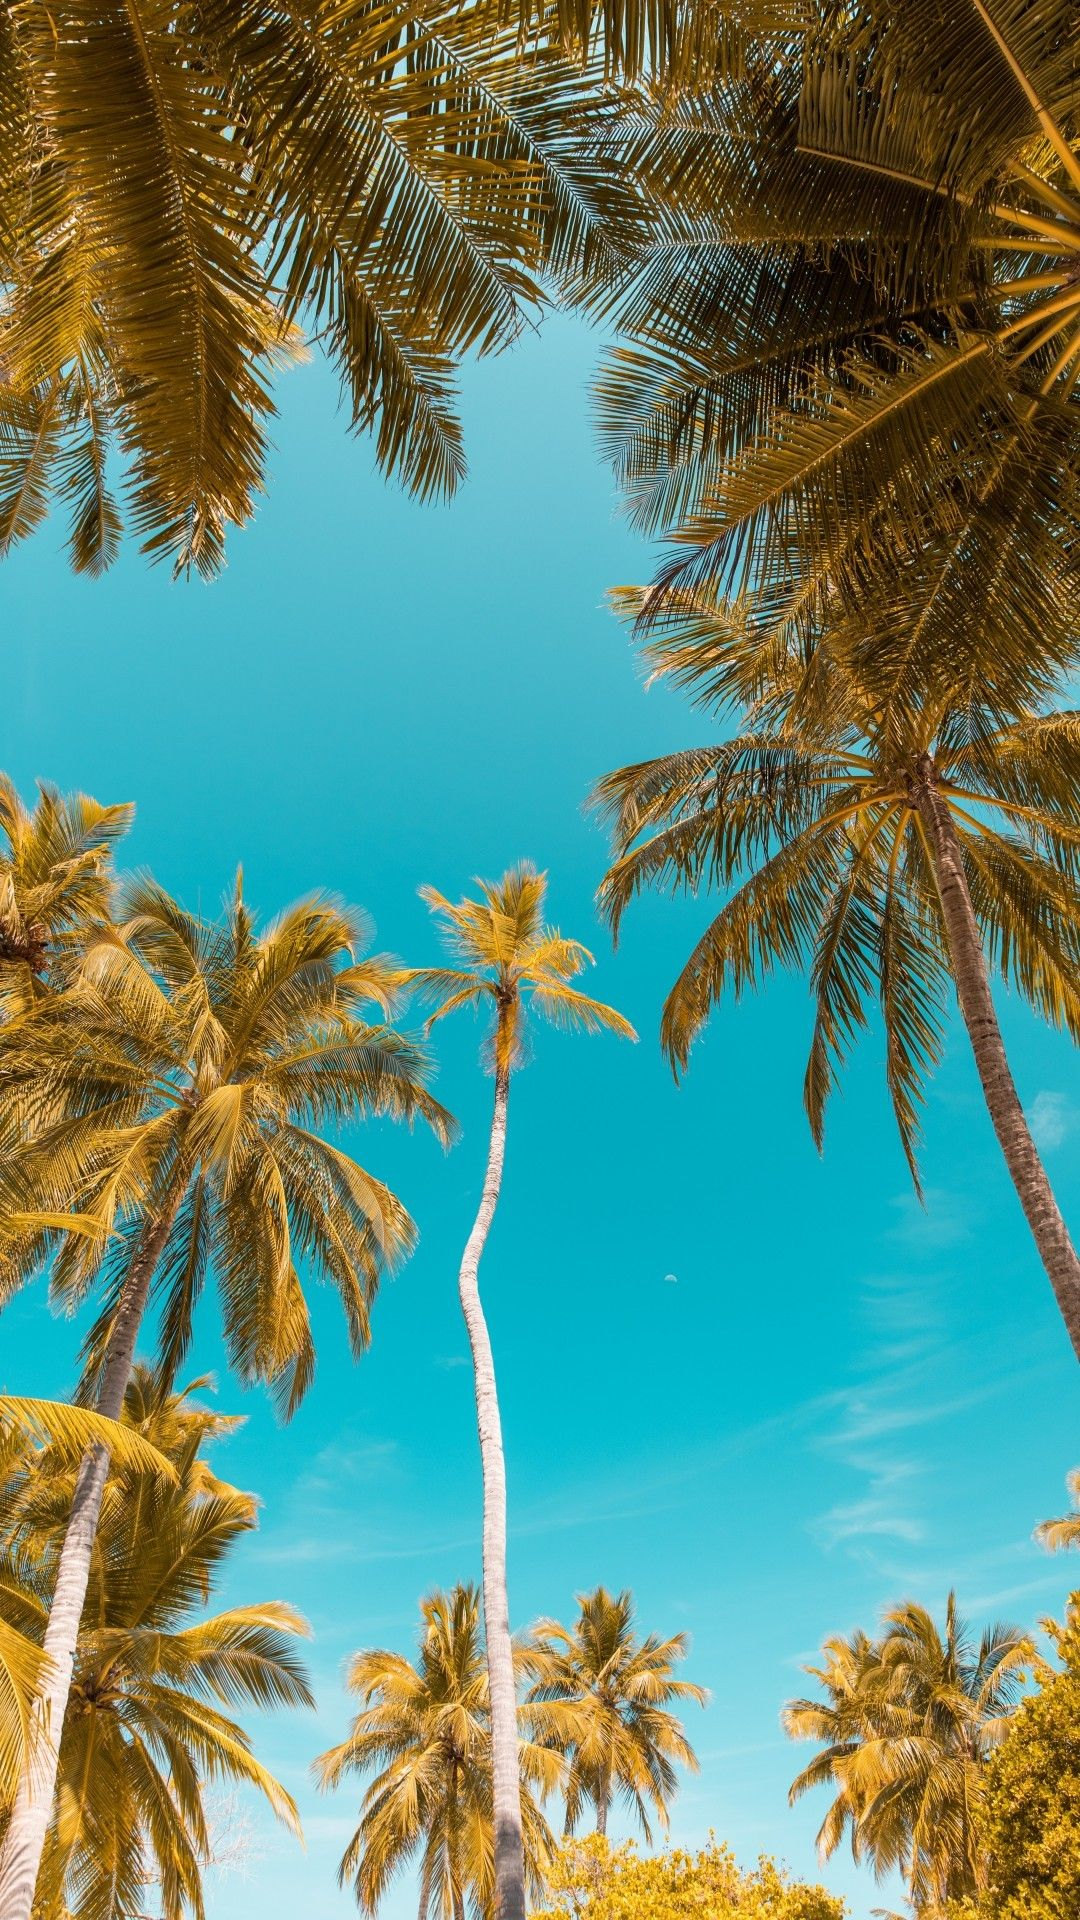 Download 1080x1920 Clear Sky, Palm Trees, Tropical